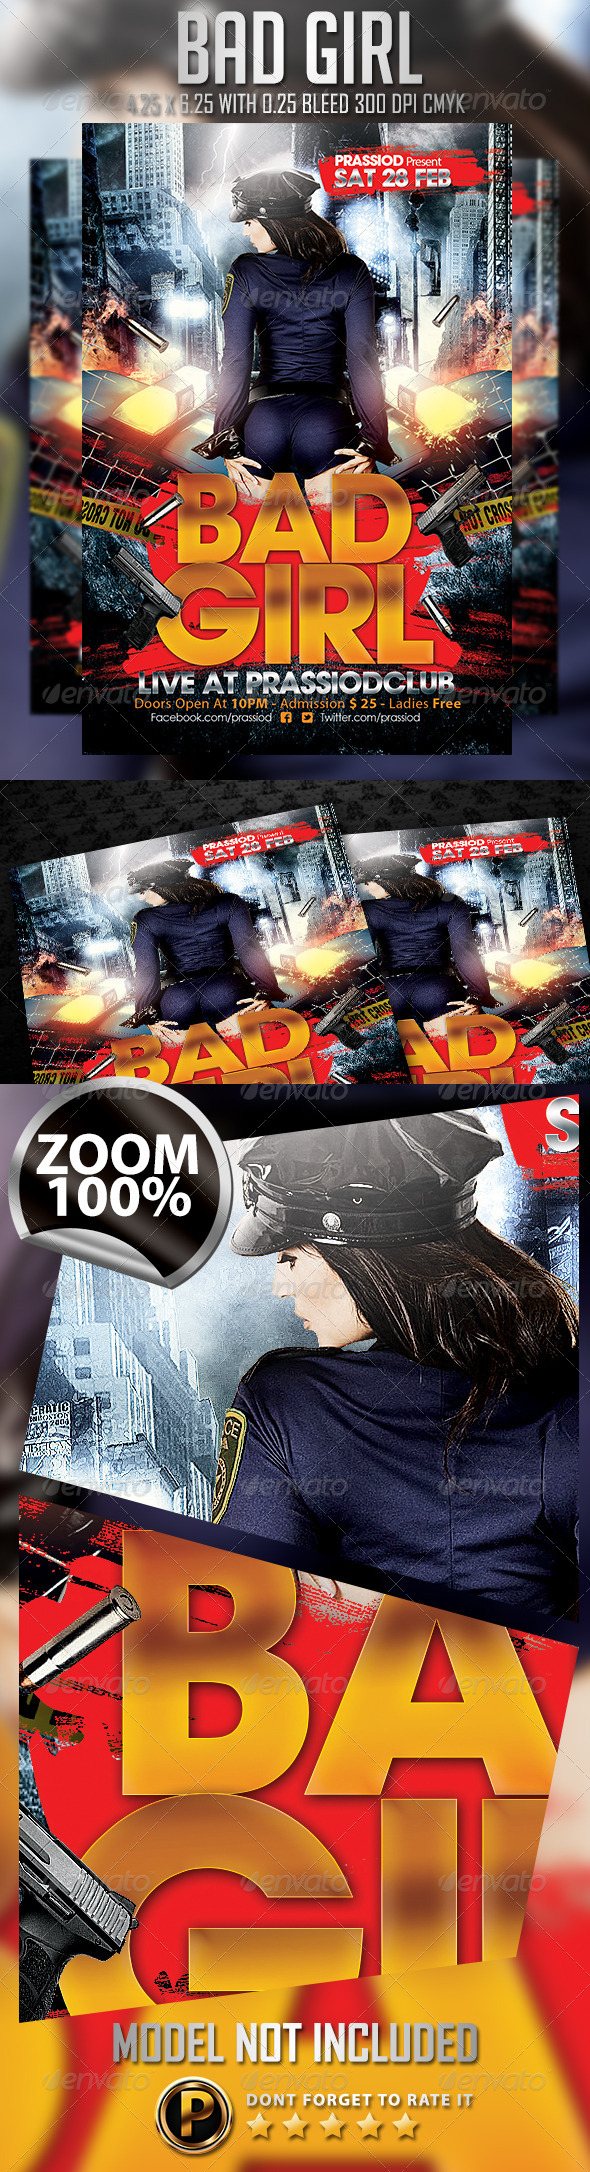 Bad Girl Flyer Template - Clubs & Parties Events